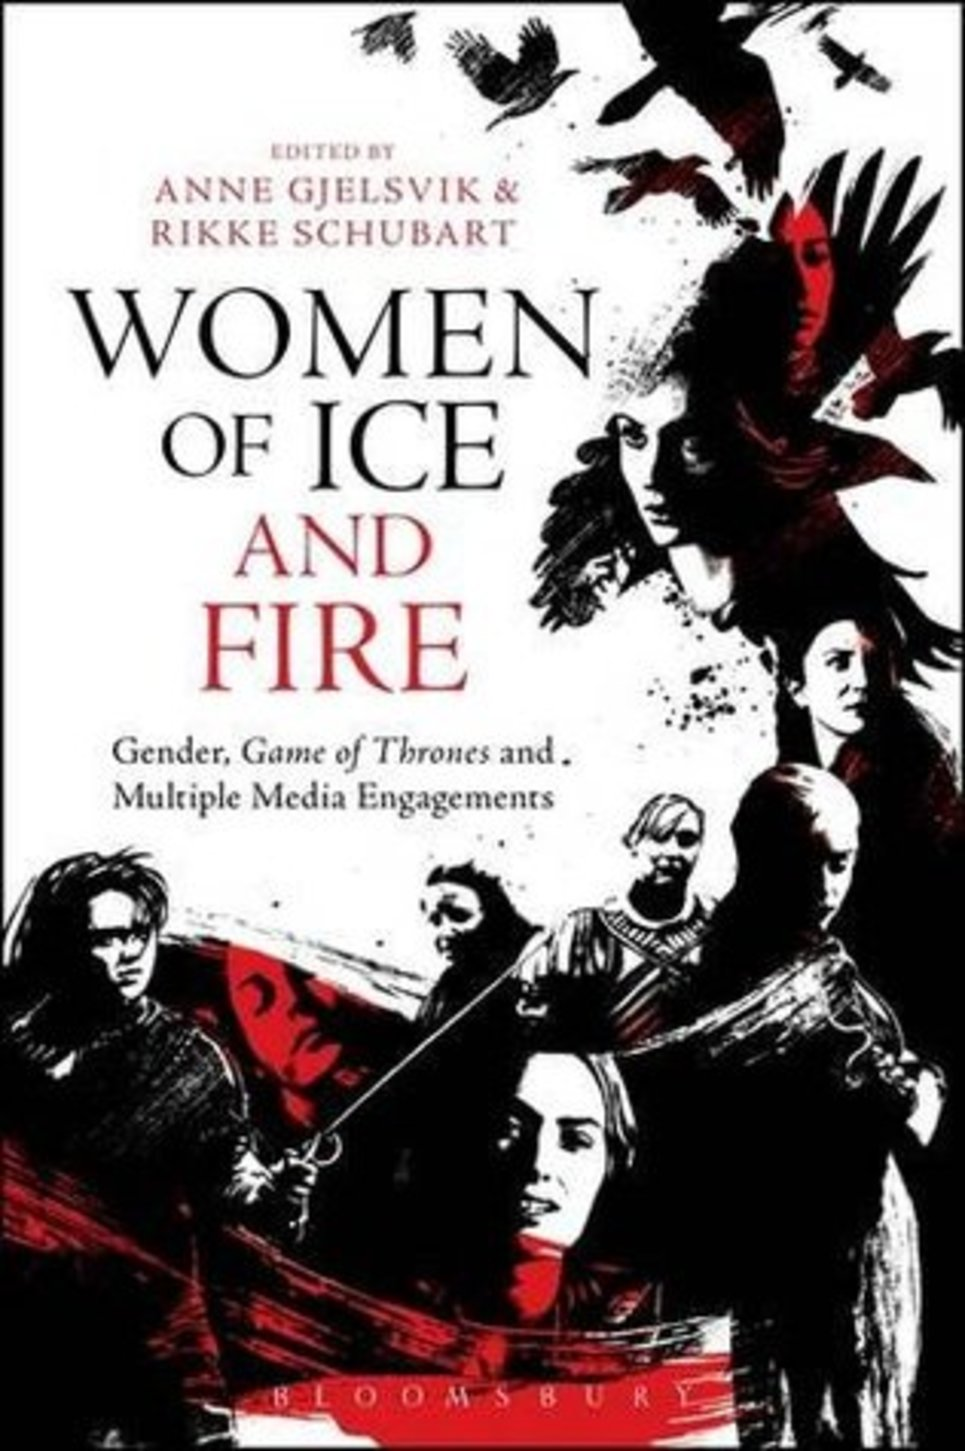 a song of ice and fire essays I have a friend who is a total essay junkie i mean, he writes like four essays a week for fun and shits and giggles so he has seen the first three seasons of the hbo show and recently acquired the first asoiaf book.